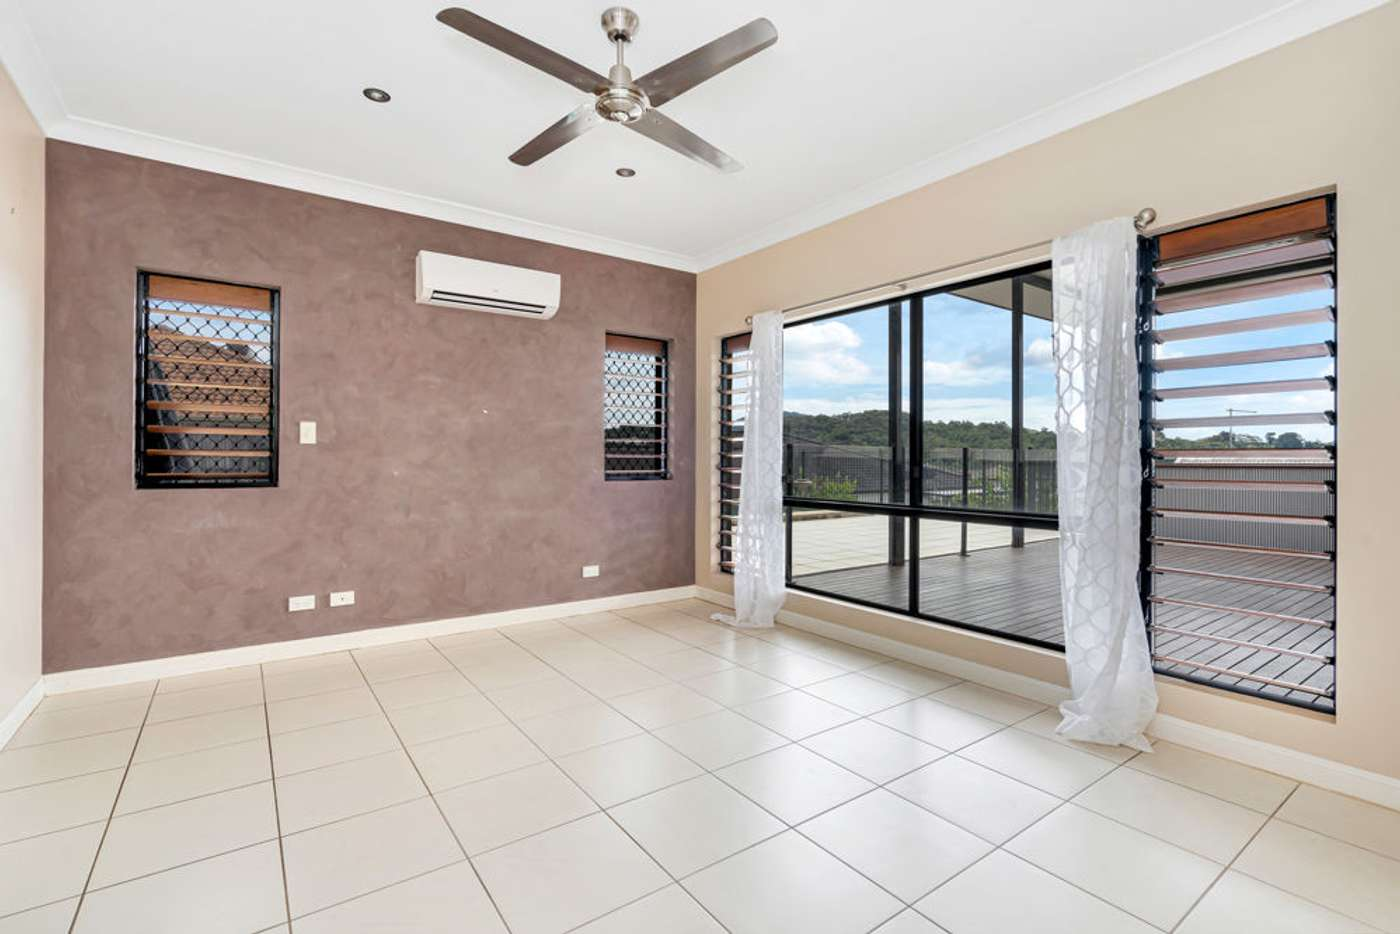 Sixth view of Homely house listing, 4 Trumpeter Street, Kanimbla QLD 4870